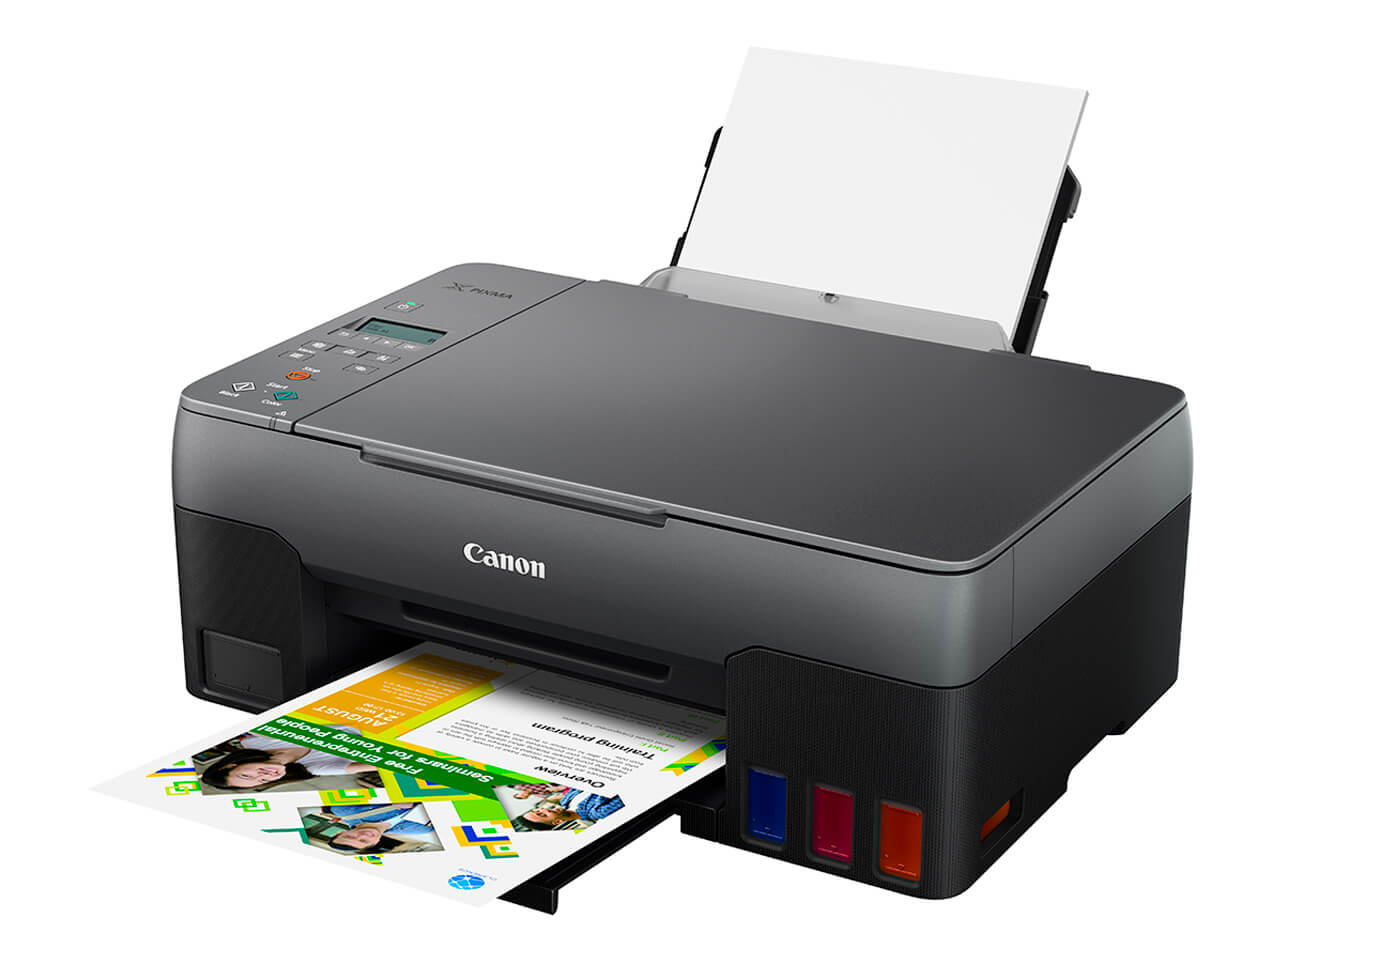 Side profile image of PIXMA G3620 MegaTank printer with tray open